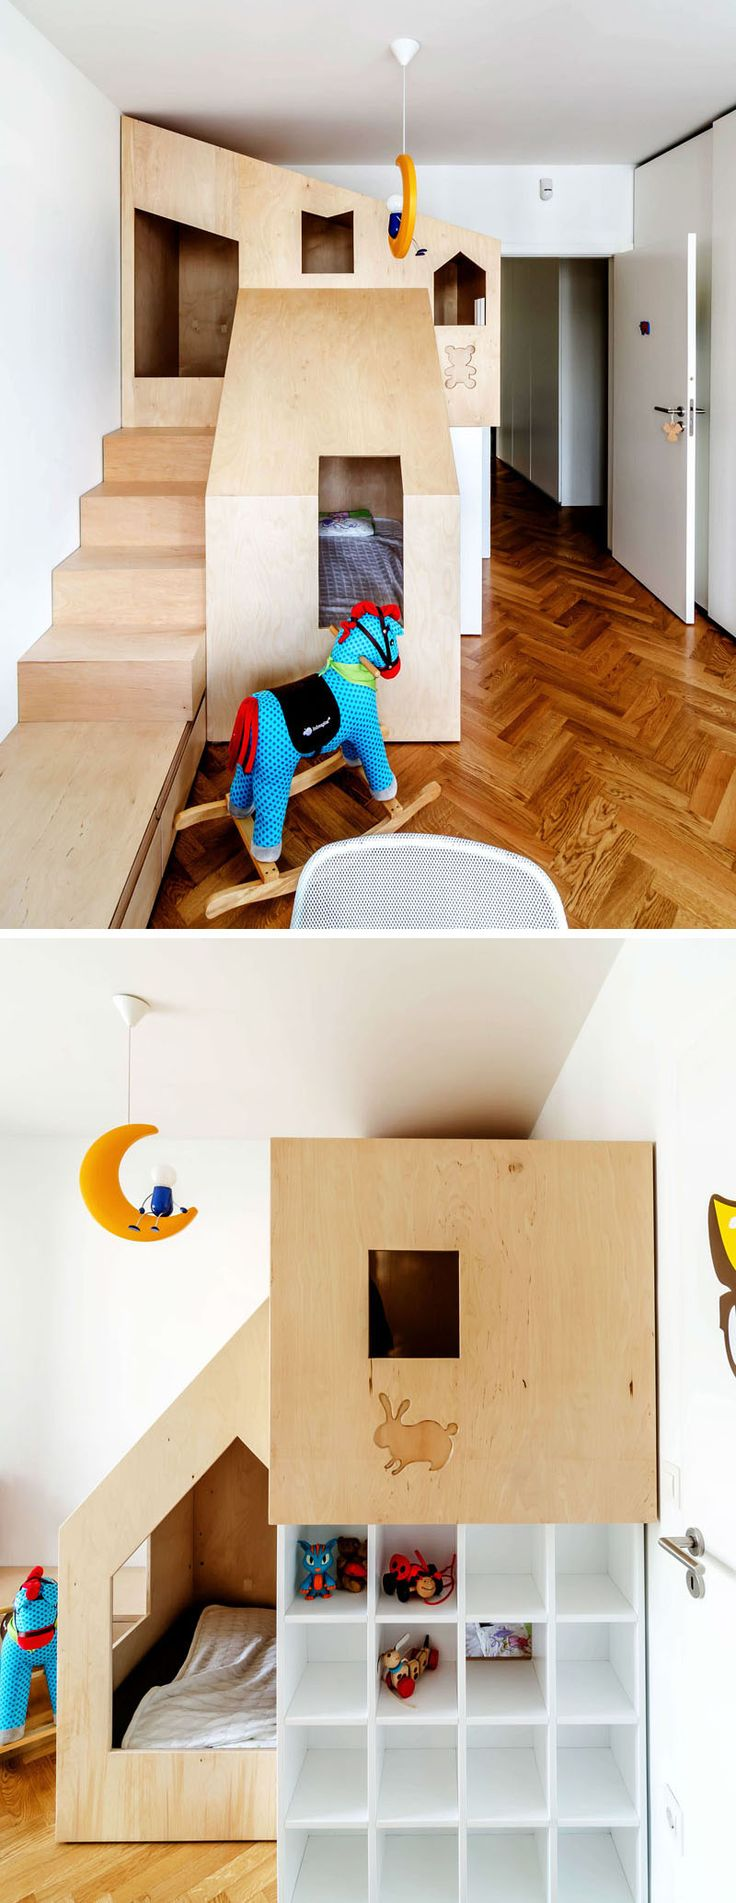 Small Kids Bed Get 20 Kids Bed Design Ideas On Pinterest Without Signing Up